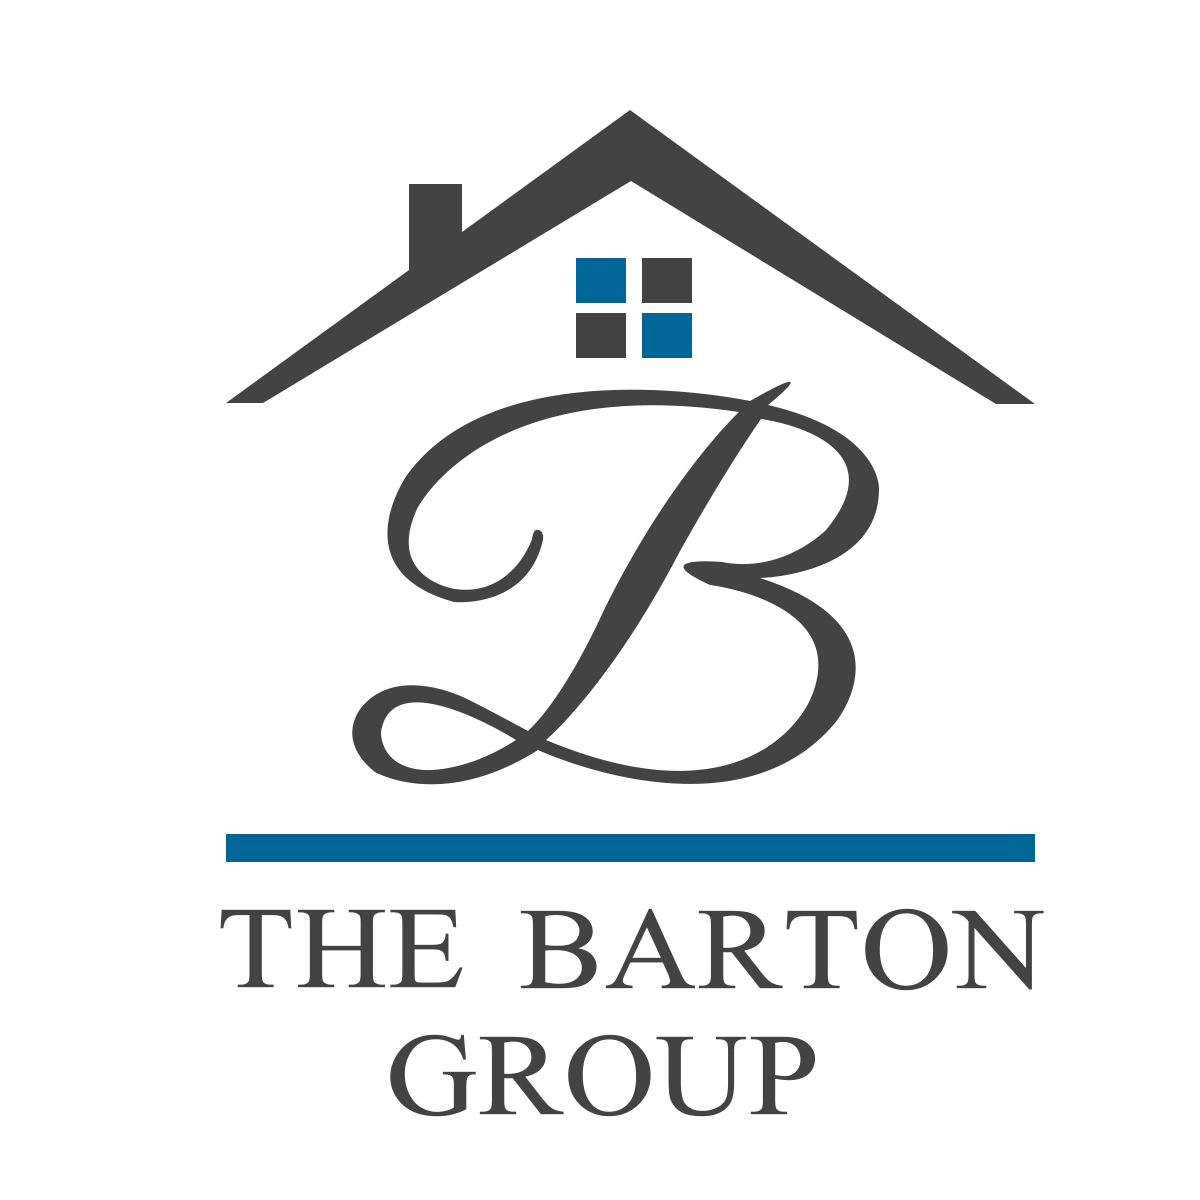 1stbarton group logo JPG